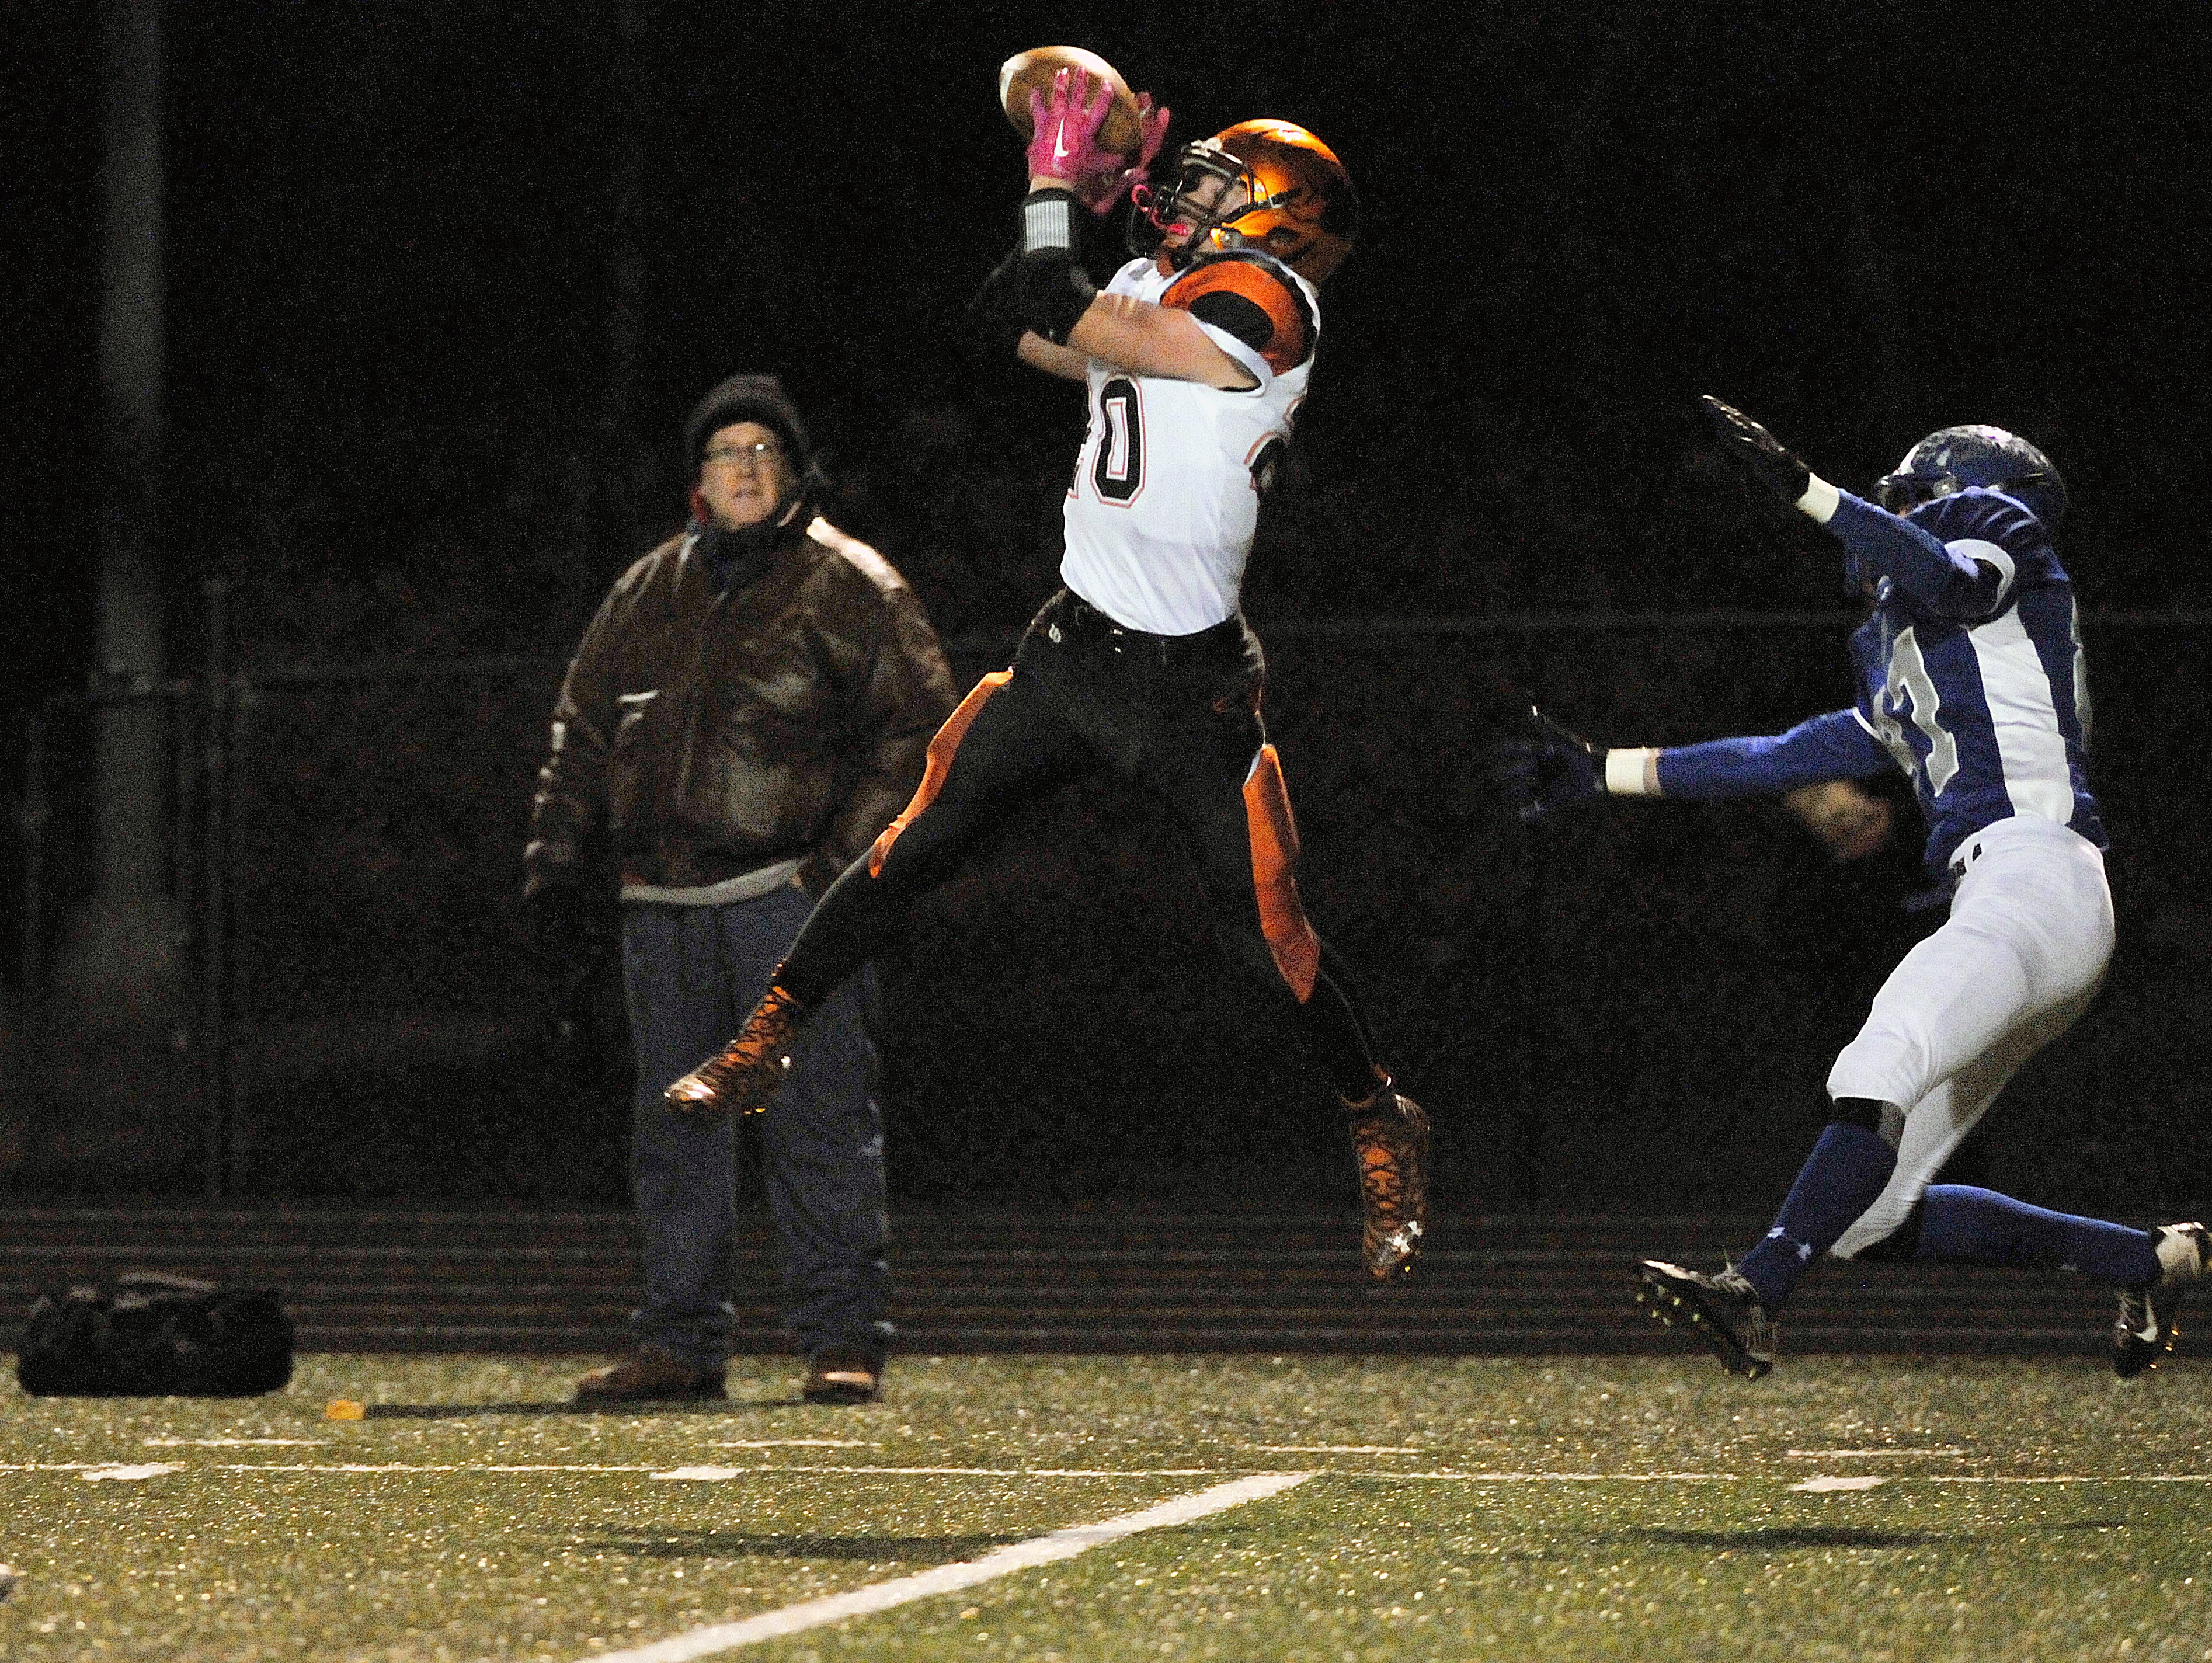 Lucas sophomore Jackson Hauger goes high to make a catch in the 44-35 regional semifinal win over two-time state champ Tiffin Calvert.